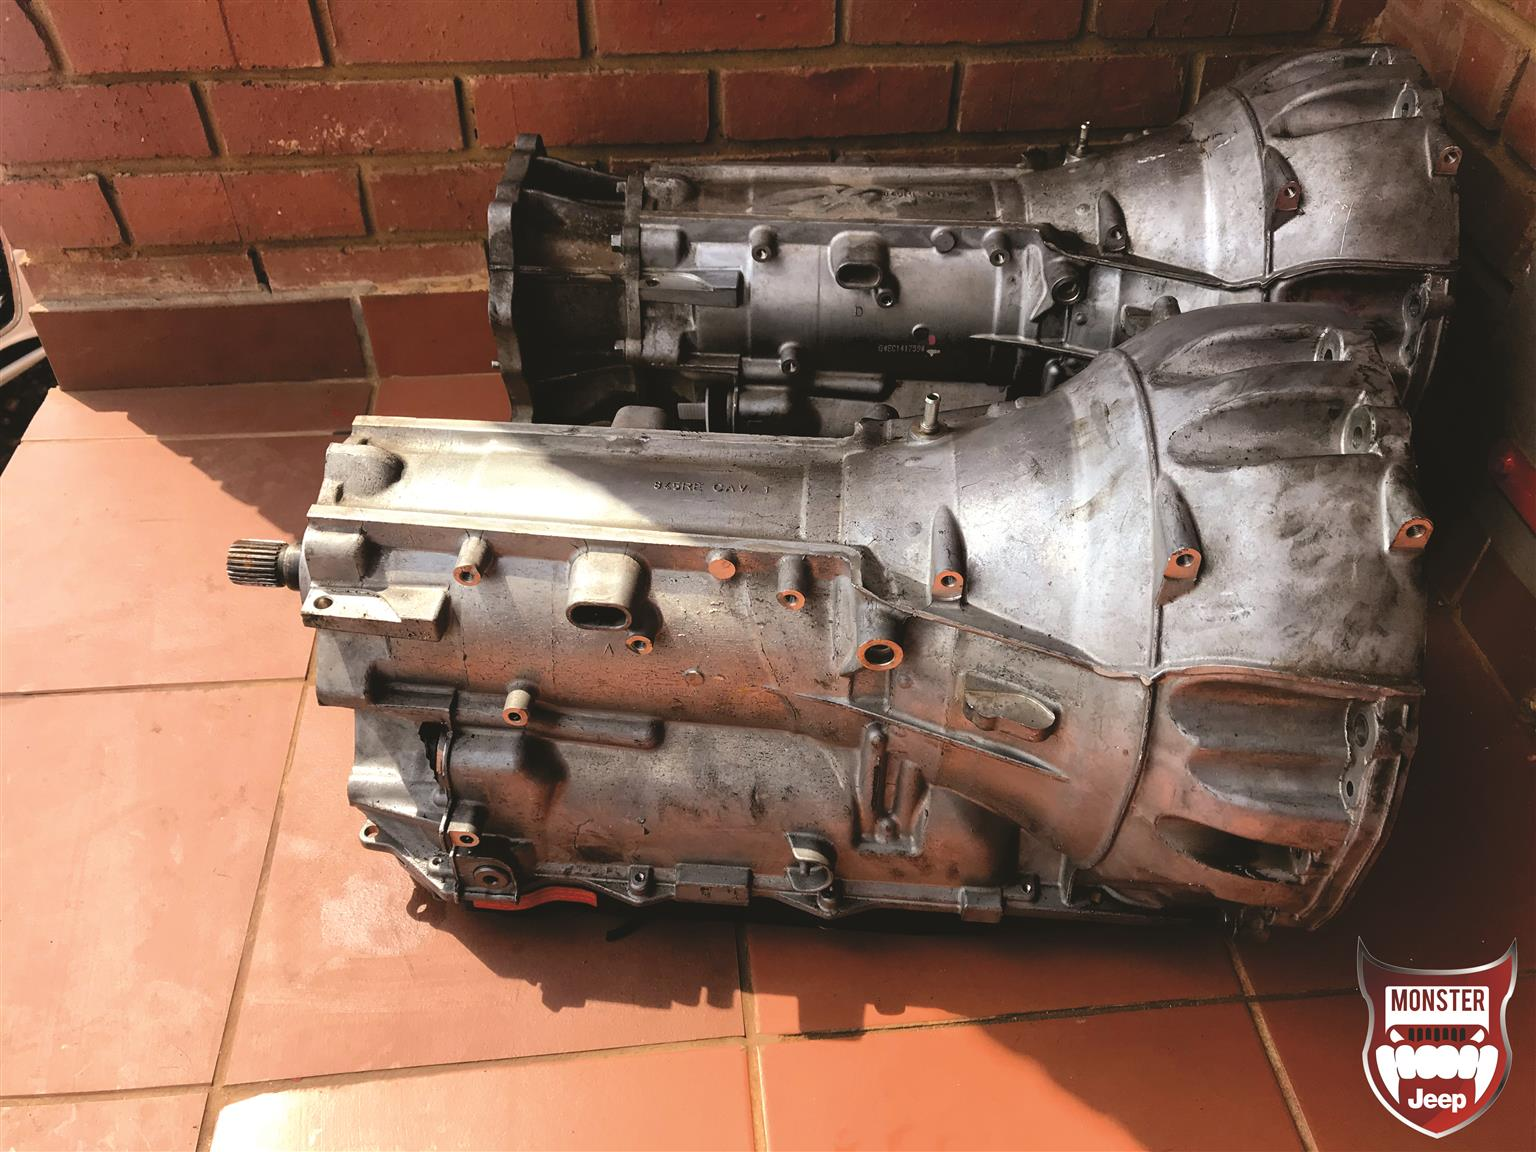 2014 - 2018 Jeep Grand Cherokee 3.6 8 speed gearboxes